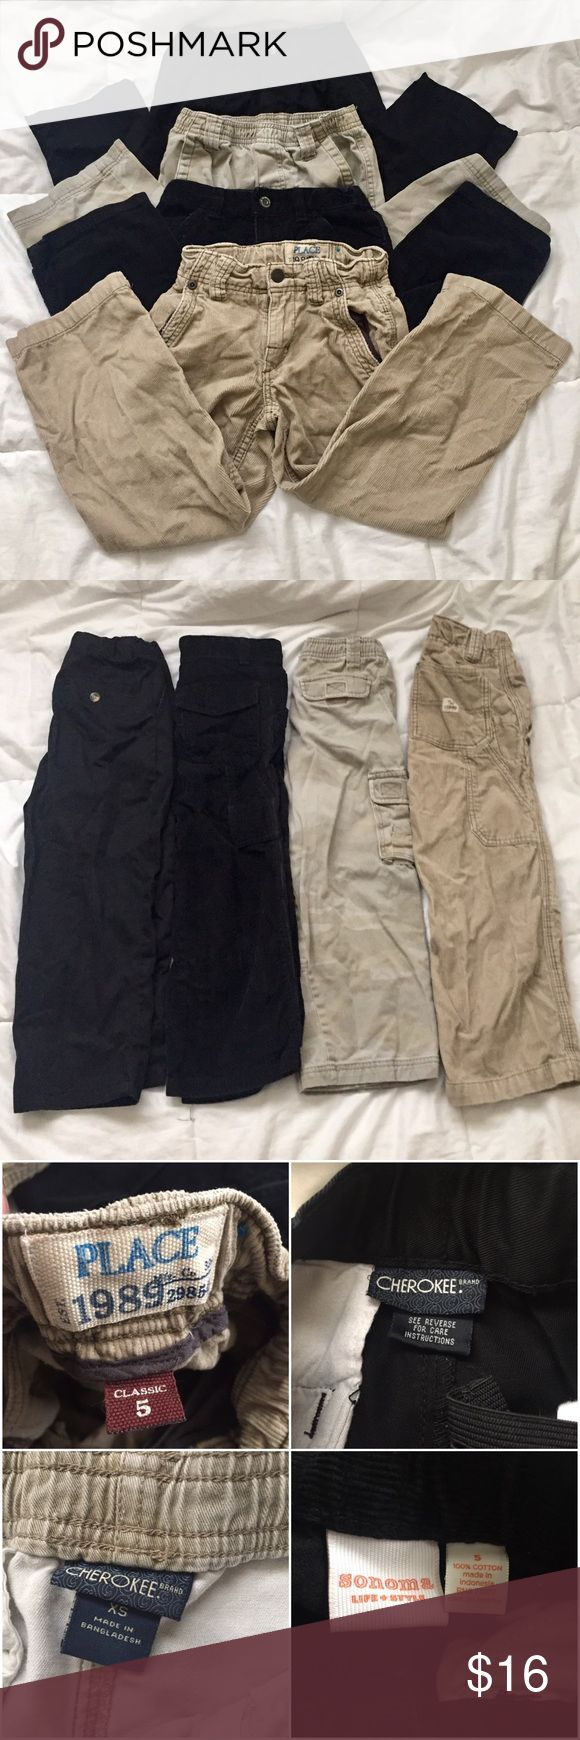 Bundle of 4 Boys Pants size 5 Boys black slacks Cherokee brand size 5 100% cotton. adjustable waist.  Khaki camo pants Cherokee brand size extra small to side pockets for pockets total elastic waist band   Boys black chords by Sonoma life and style size 5 and 100% cotton adjustable waist.  Khaki chords by the children's Place size 5 classic Adjustable waist  All in good condition with normal signs of wear from wash. Black pants are not faded.   Questions? Please ask prior to purchasing…